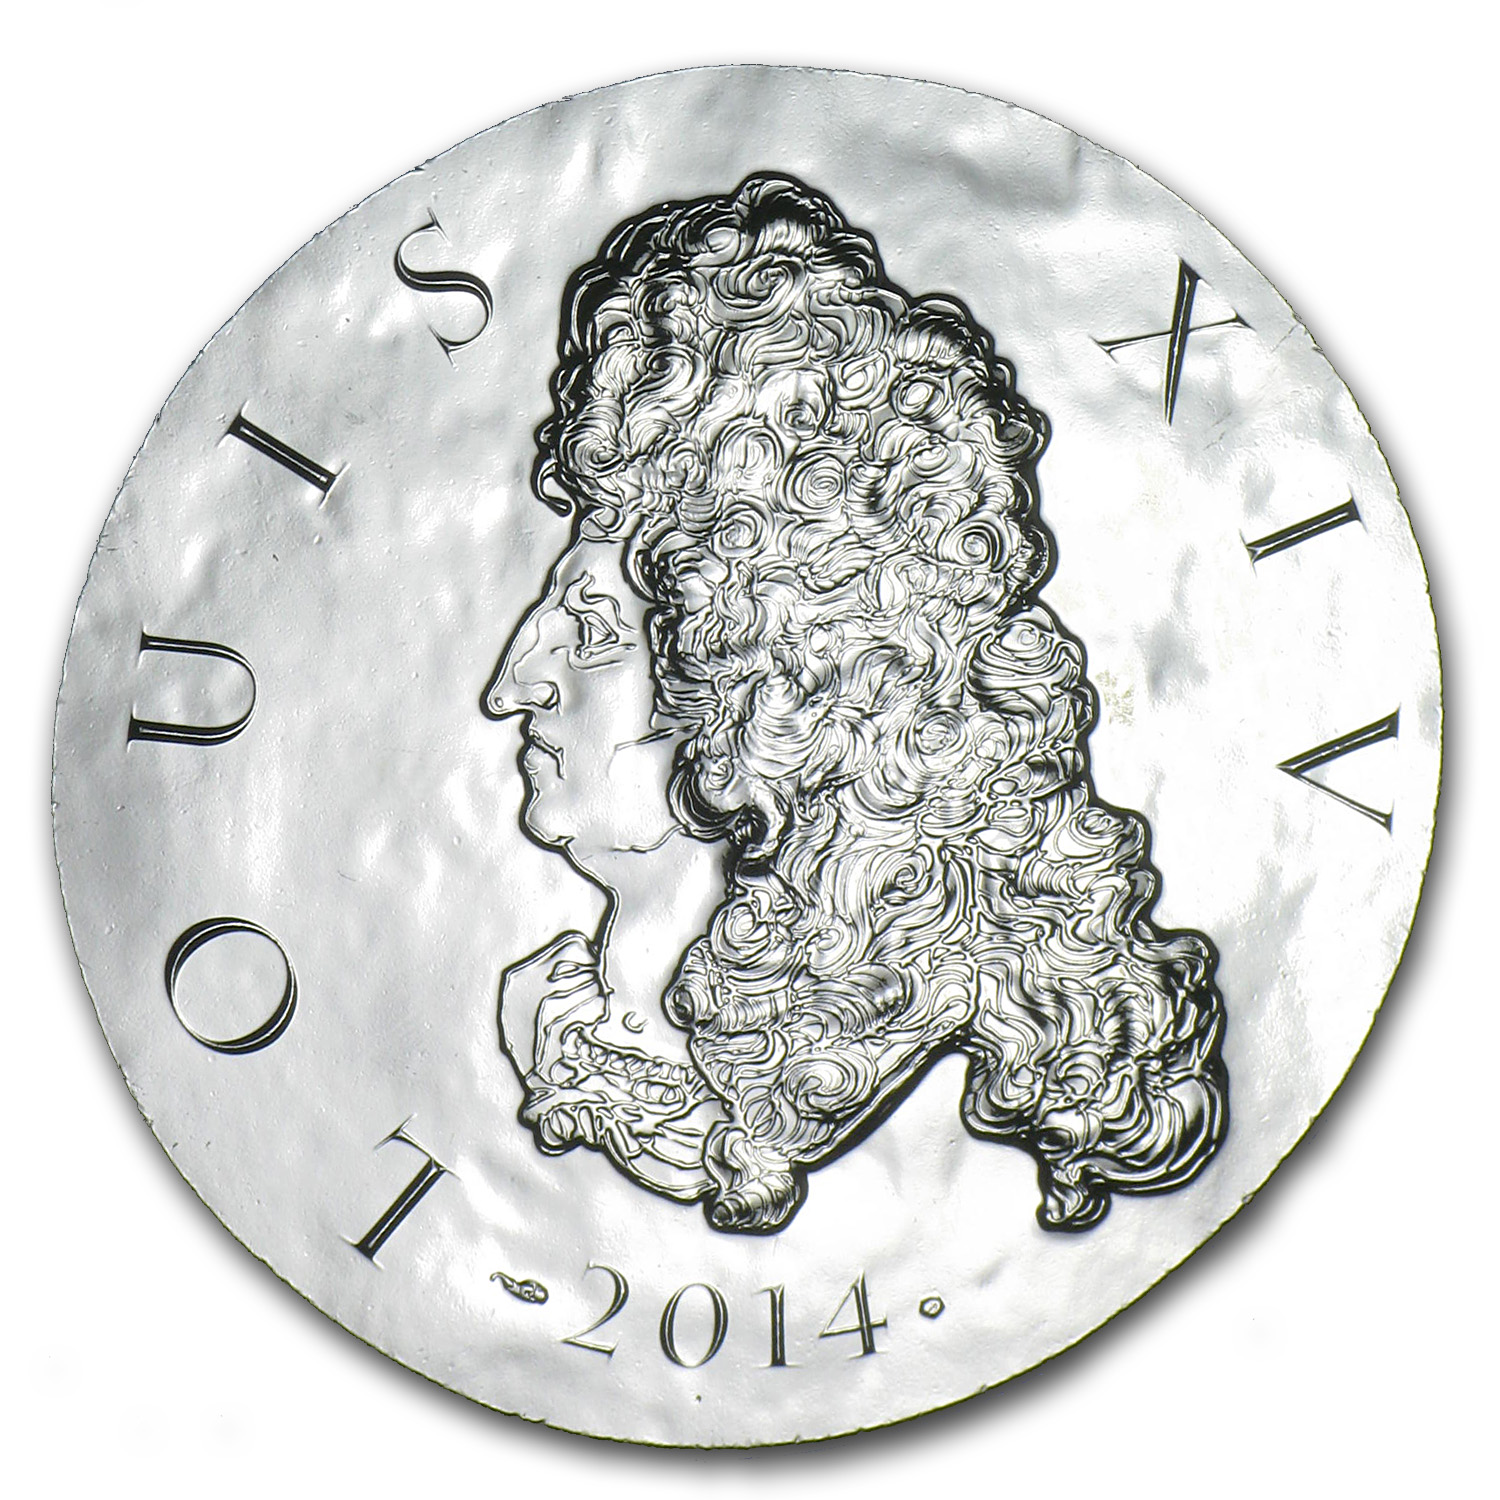 2014 France Silver €10 Legendary Collection Proof (Louis XIV)